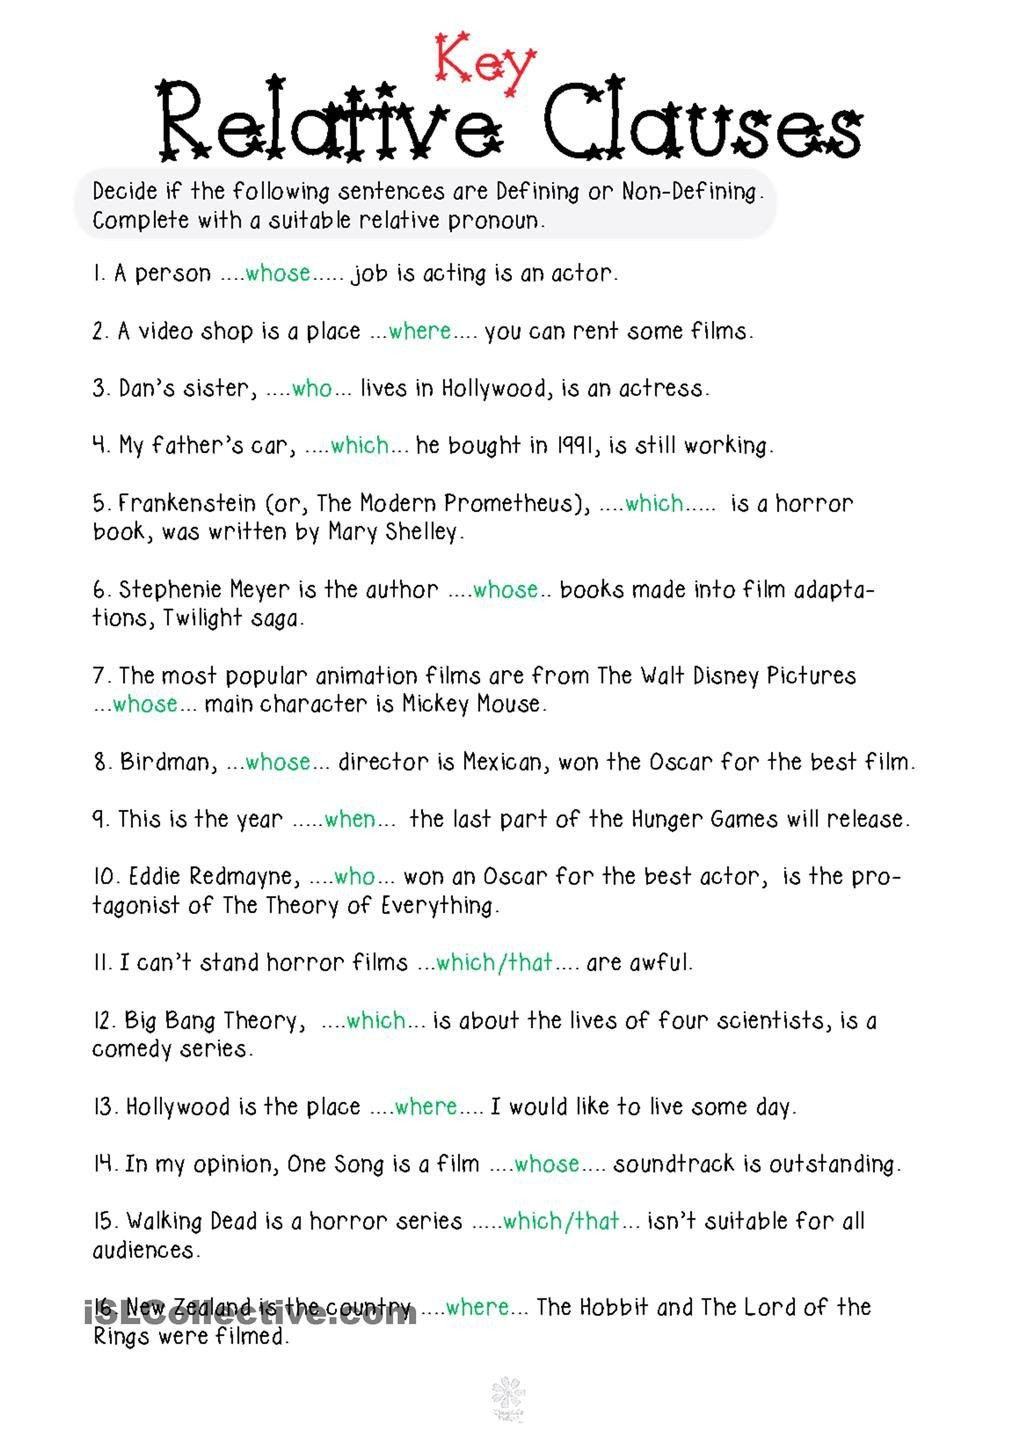 Relative Pronouns Worksheet Grade 4 Relative Pronouns Worksheet 4th Grade Pronoun Worksheets 4th